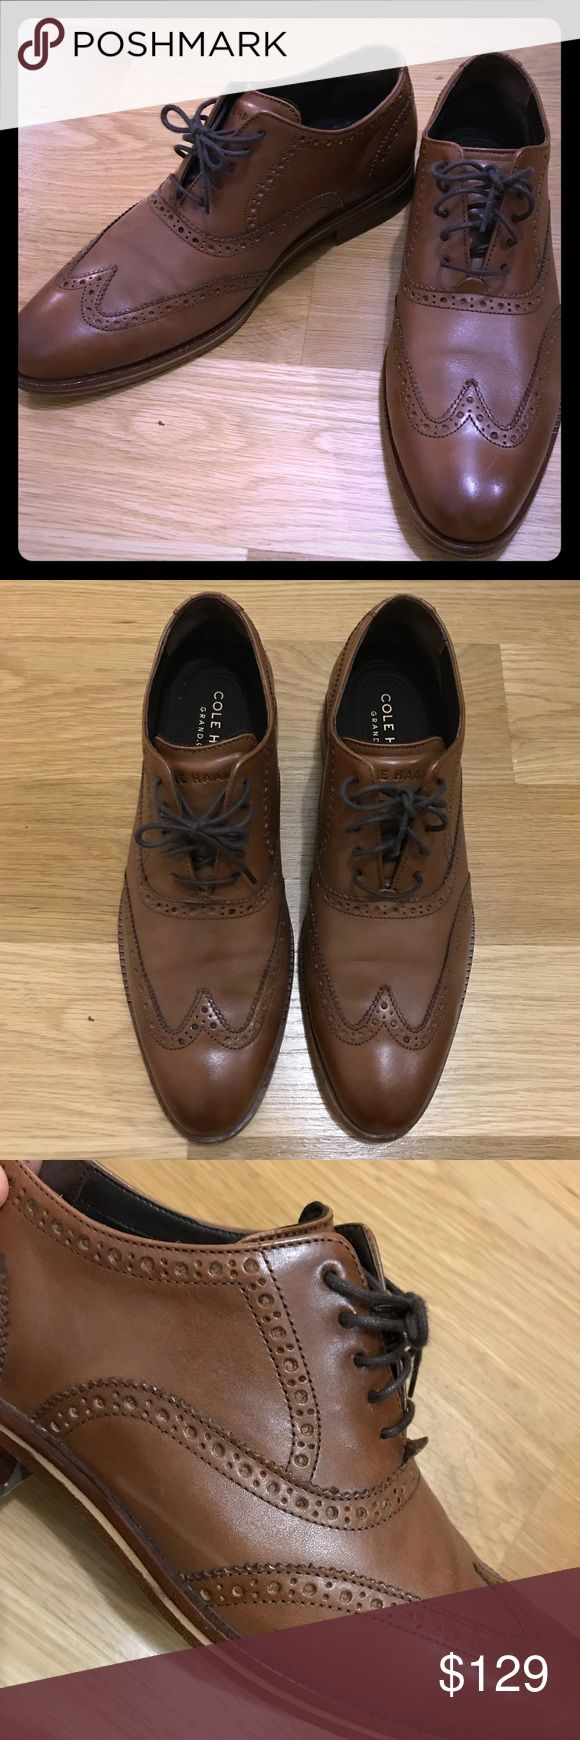 Cole Haan Oxfords size 8 Cole Haan Hamilton Grand Wing tip Oxford. Chestnut brown Size 8. Very gently worn, only worn a few times then realized the wrong size was purchased. Solid black color. Stored in cedar shoe trees, the shoe is well cared for. Cole Haan Shoes Oxfords & Derbys